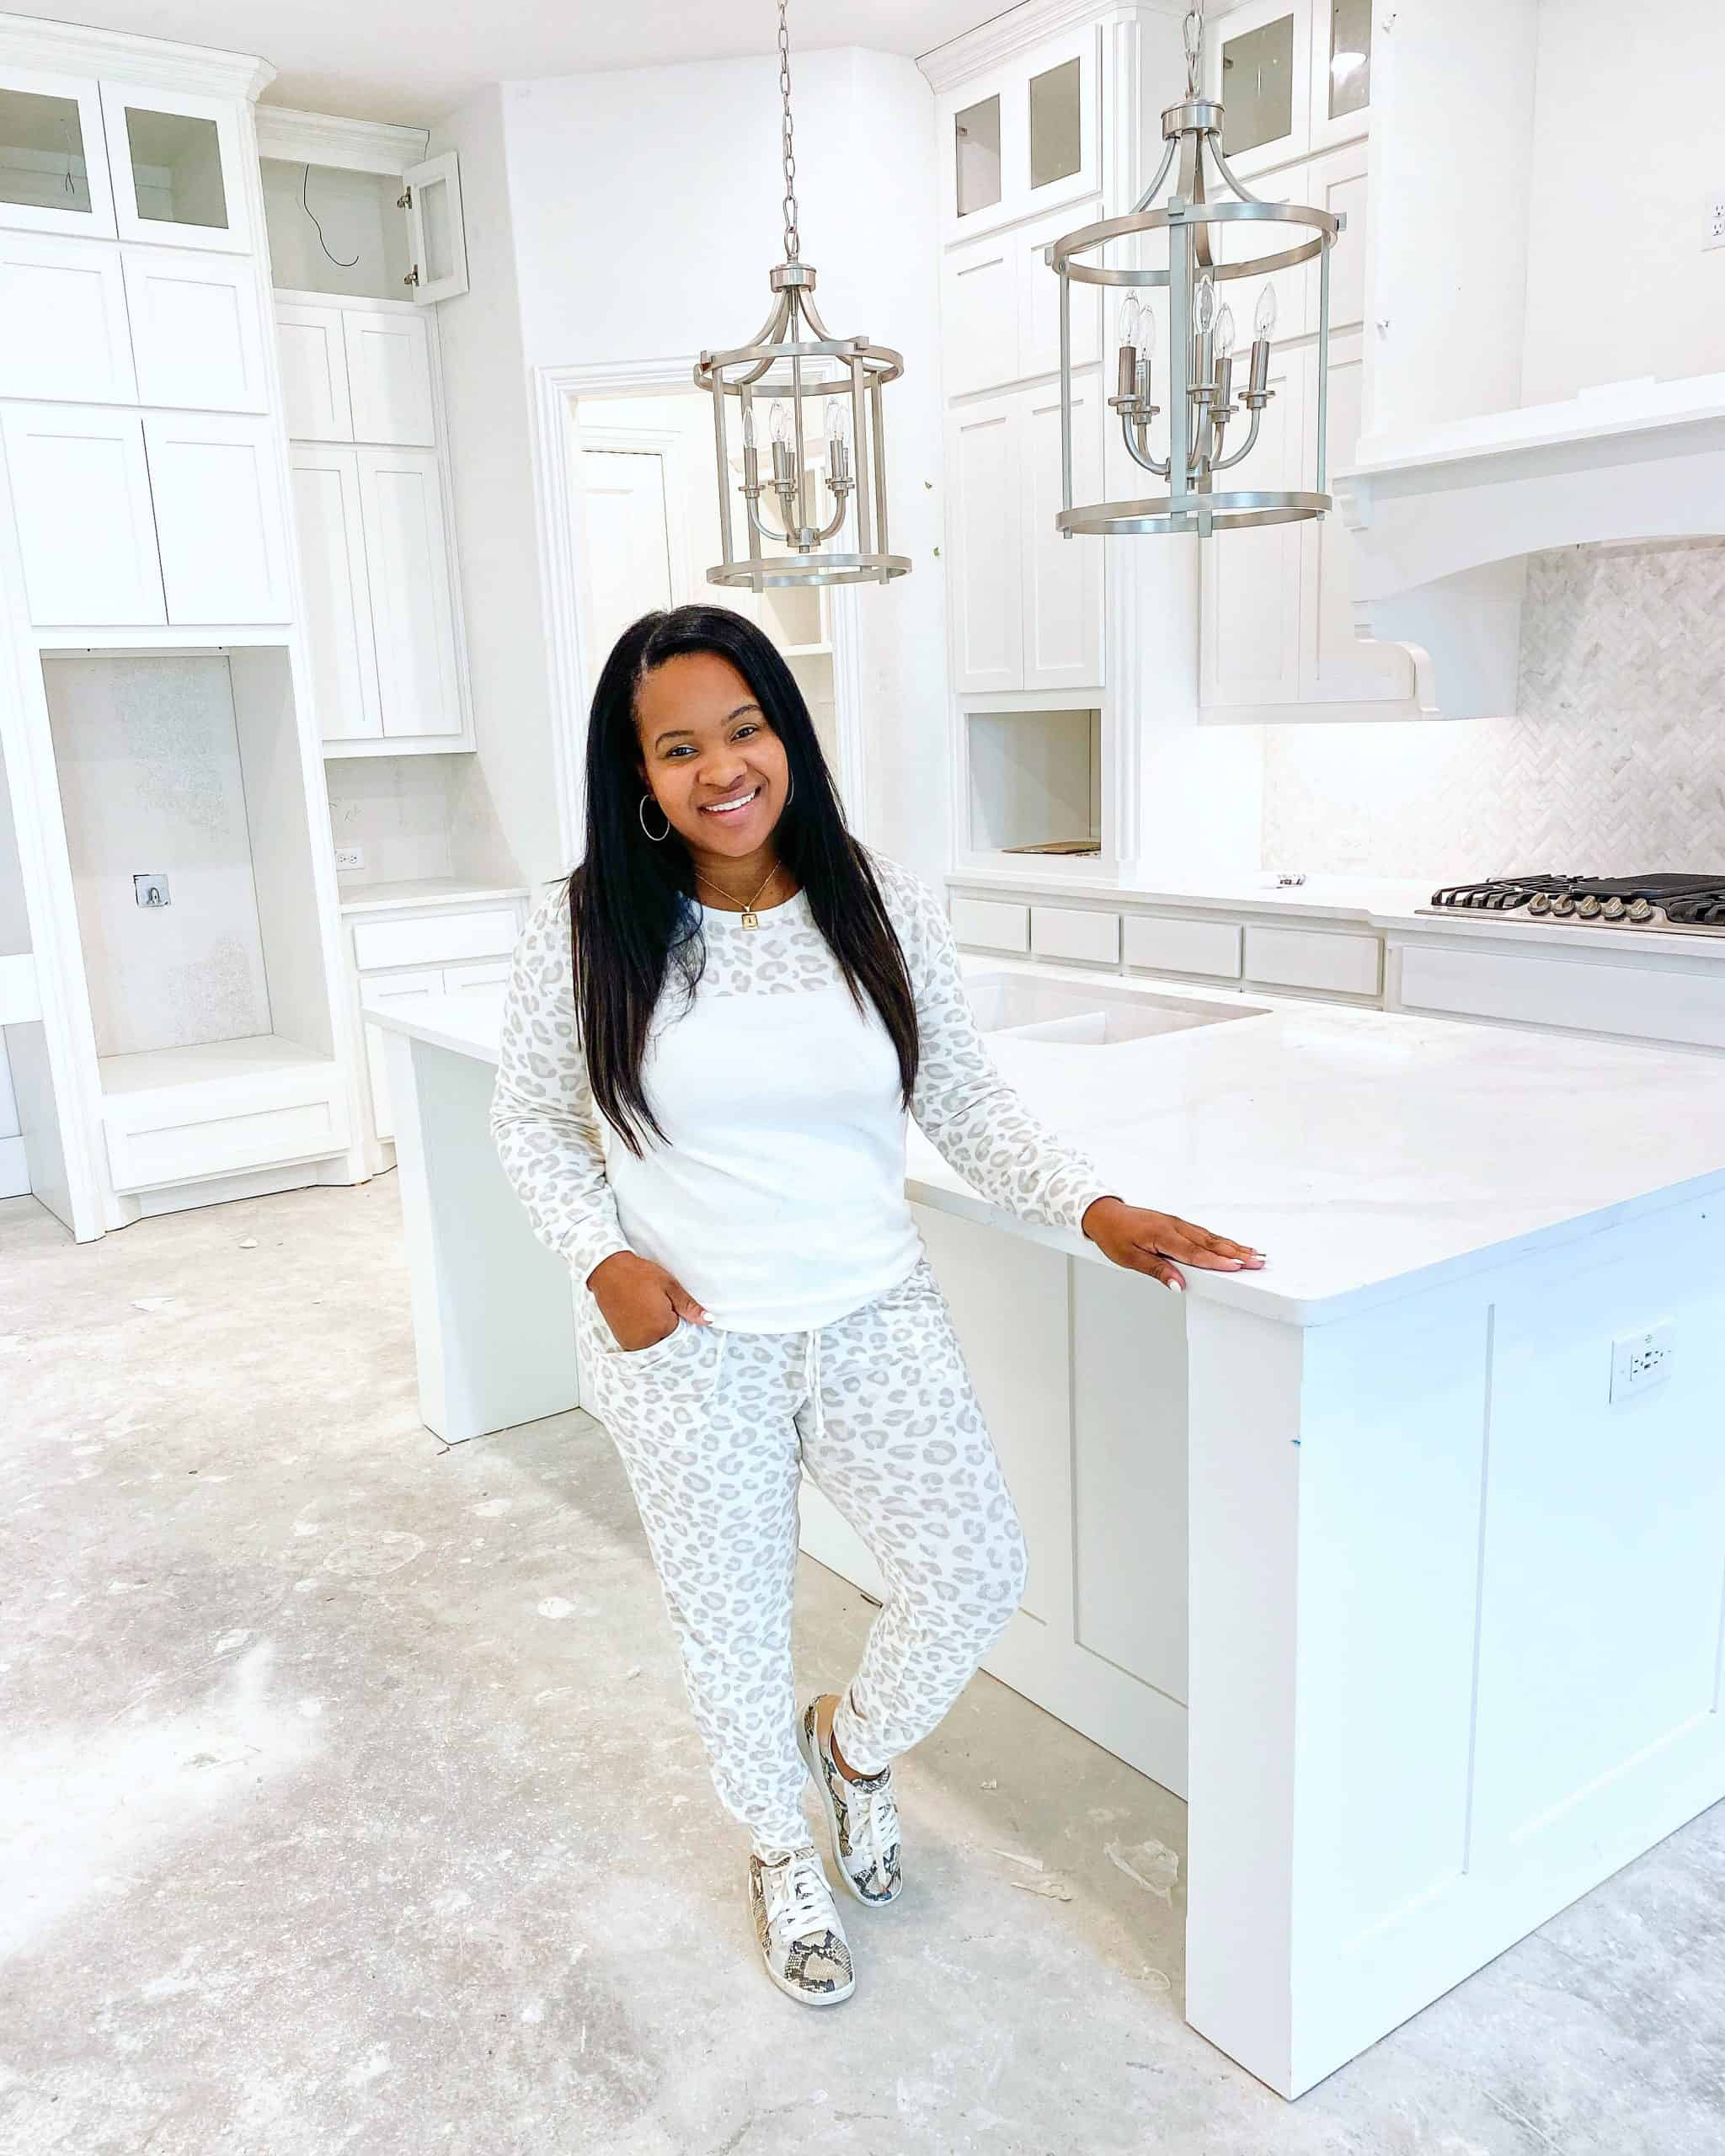 Best Nordstrom Fall Loungewear featured by top Dallas fashion blogger, Glamorous Versatility | Comfortable Loungewear by popular Dallas fashion blog, Glamorous Versatility: image of a woman standing in an unfinished kitchen and wearing a leopard print loungewear set with some snakeskin sneakers.